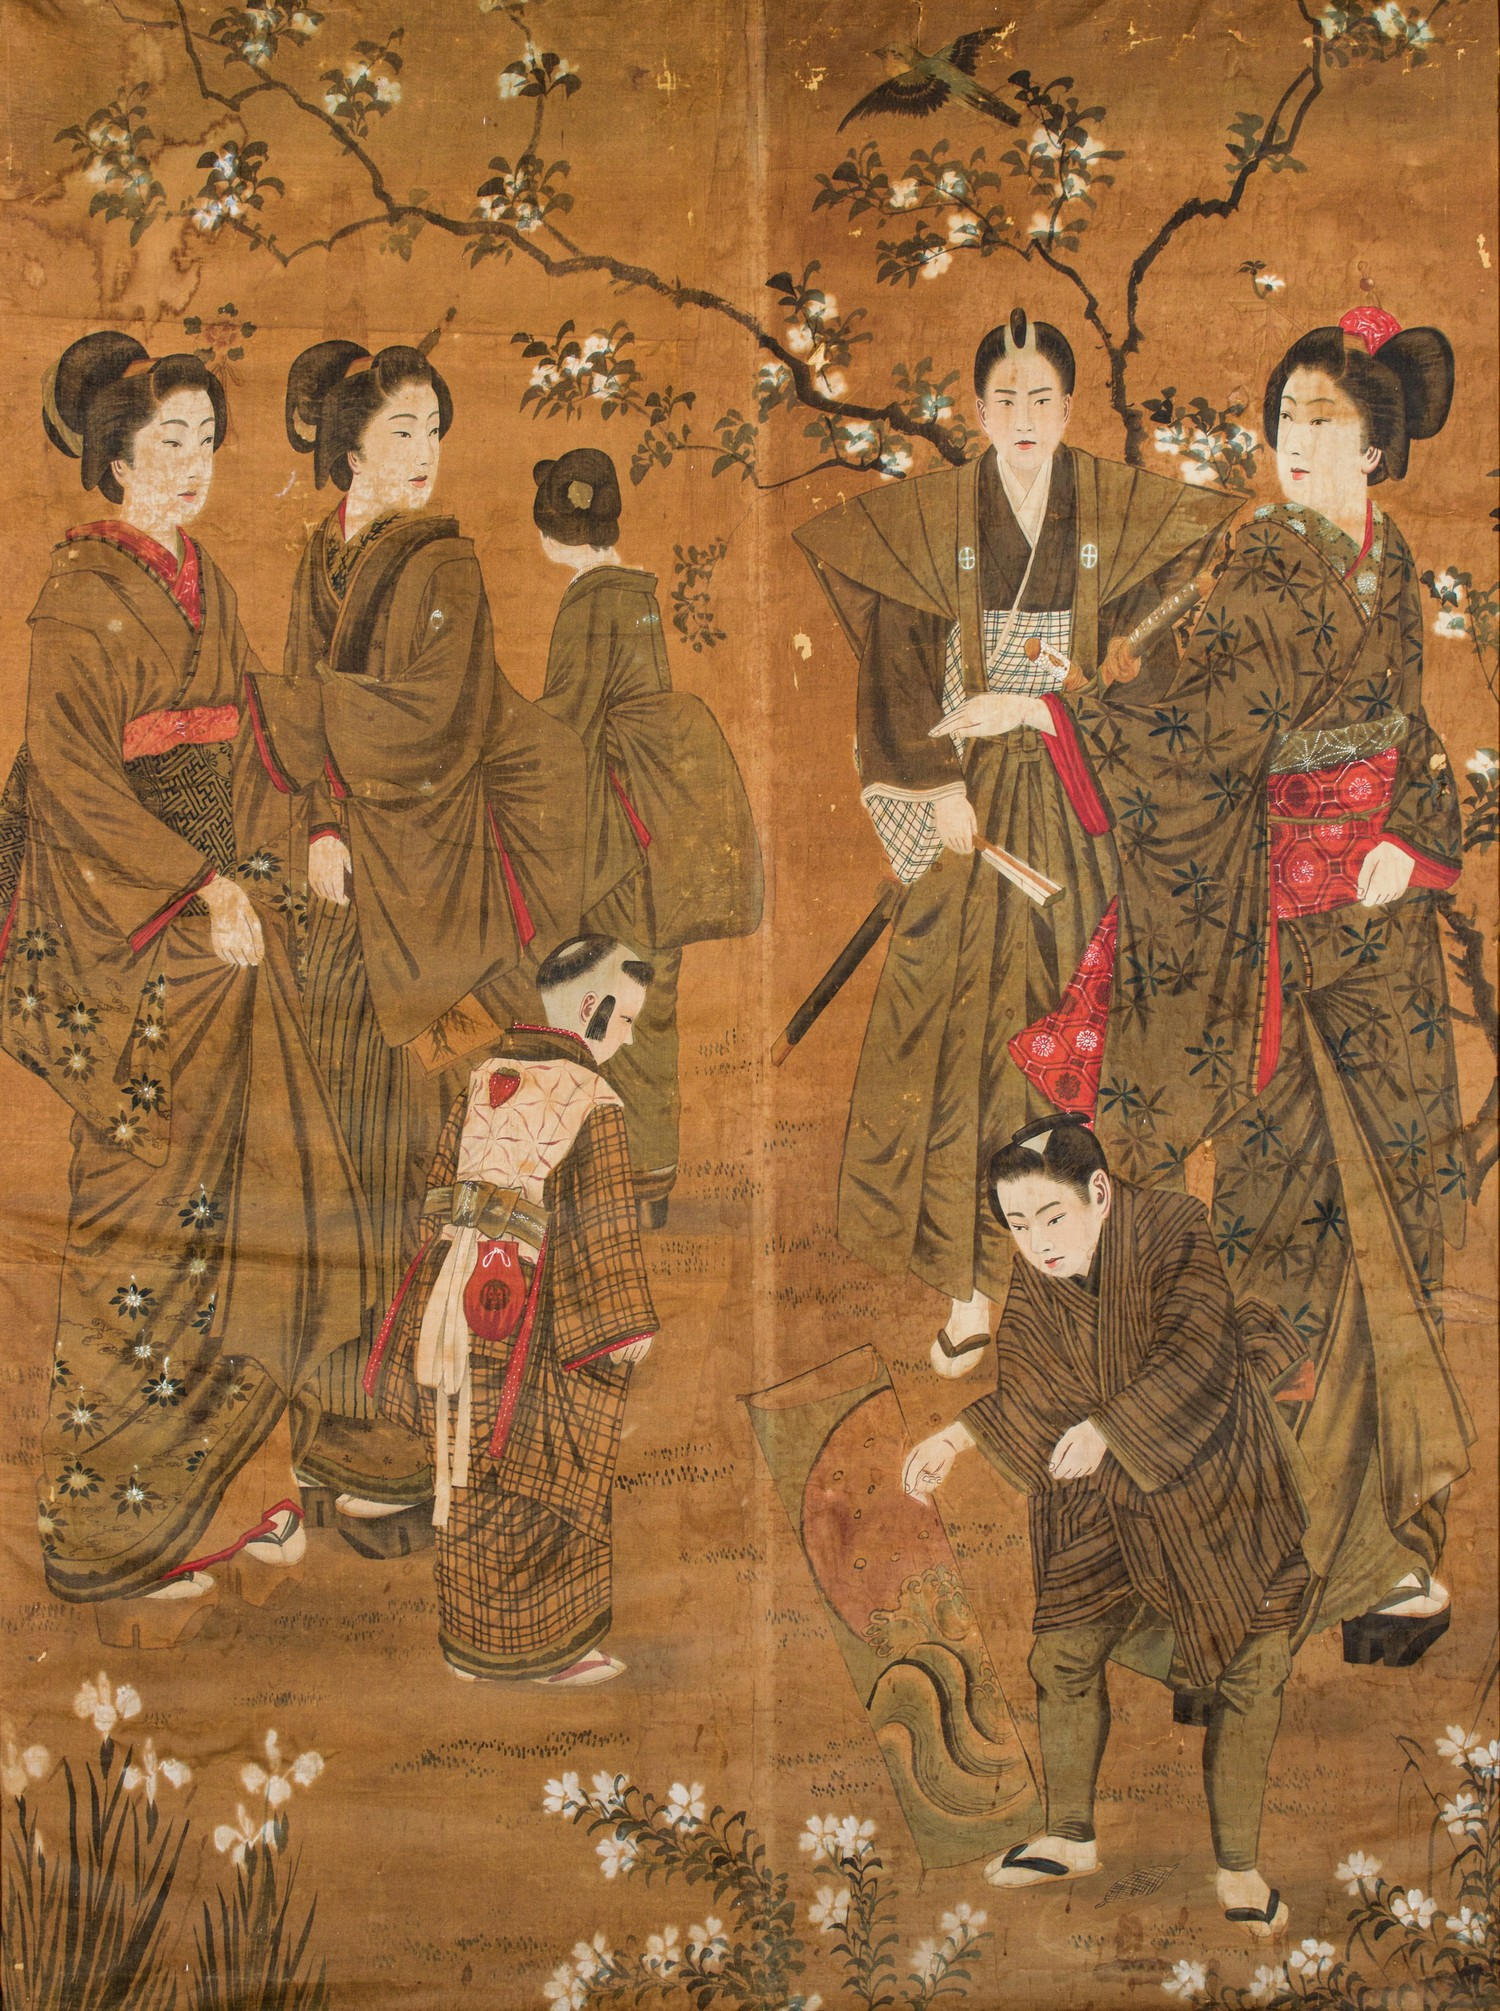 A JAPANESE INK AND WATERCOLOUR ON FABRIC 'GEISHAS AND SHOGUN' PAINTING, MEIJI PERIOD, 1868 - 1912